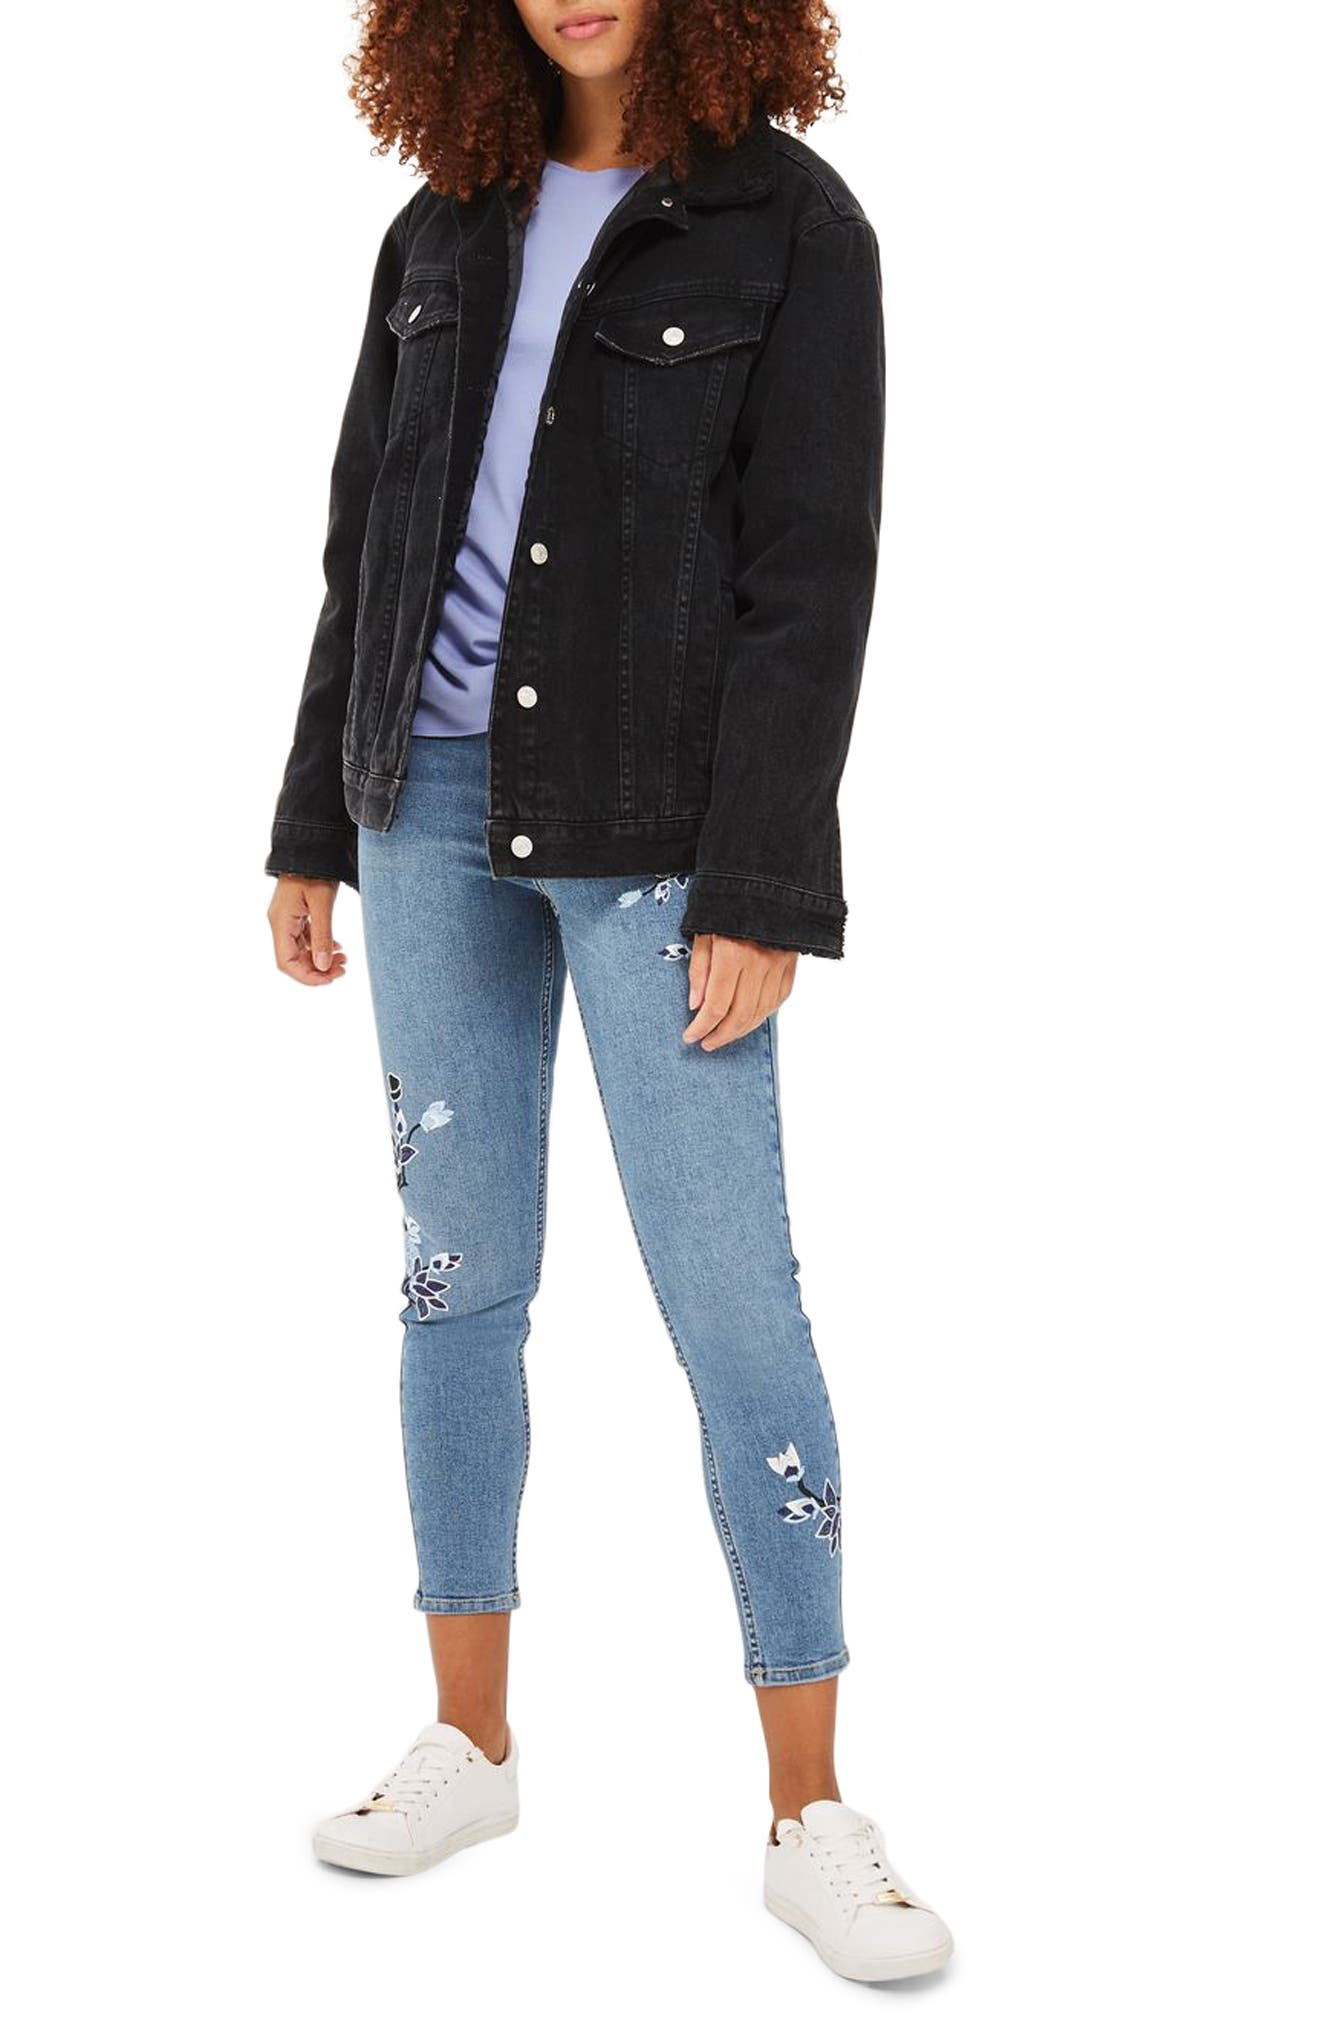 Topshop Faux Shearling Trim Denim Jacket